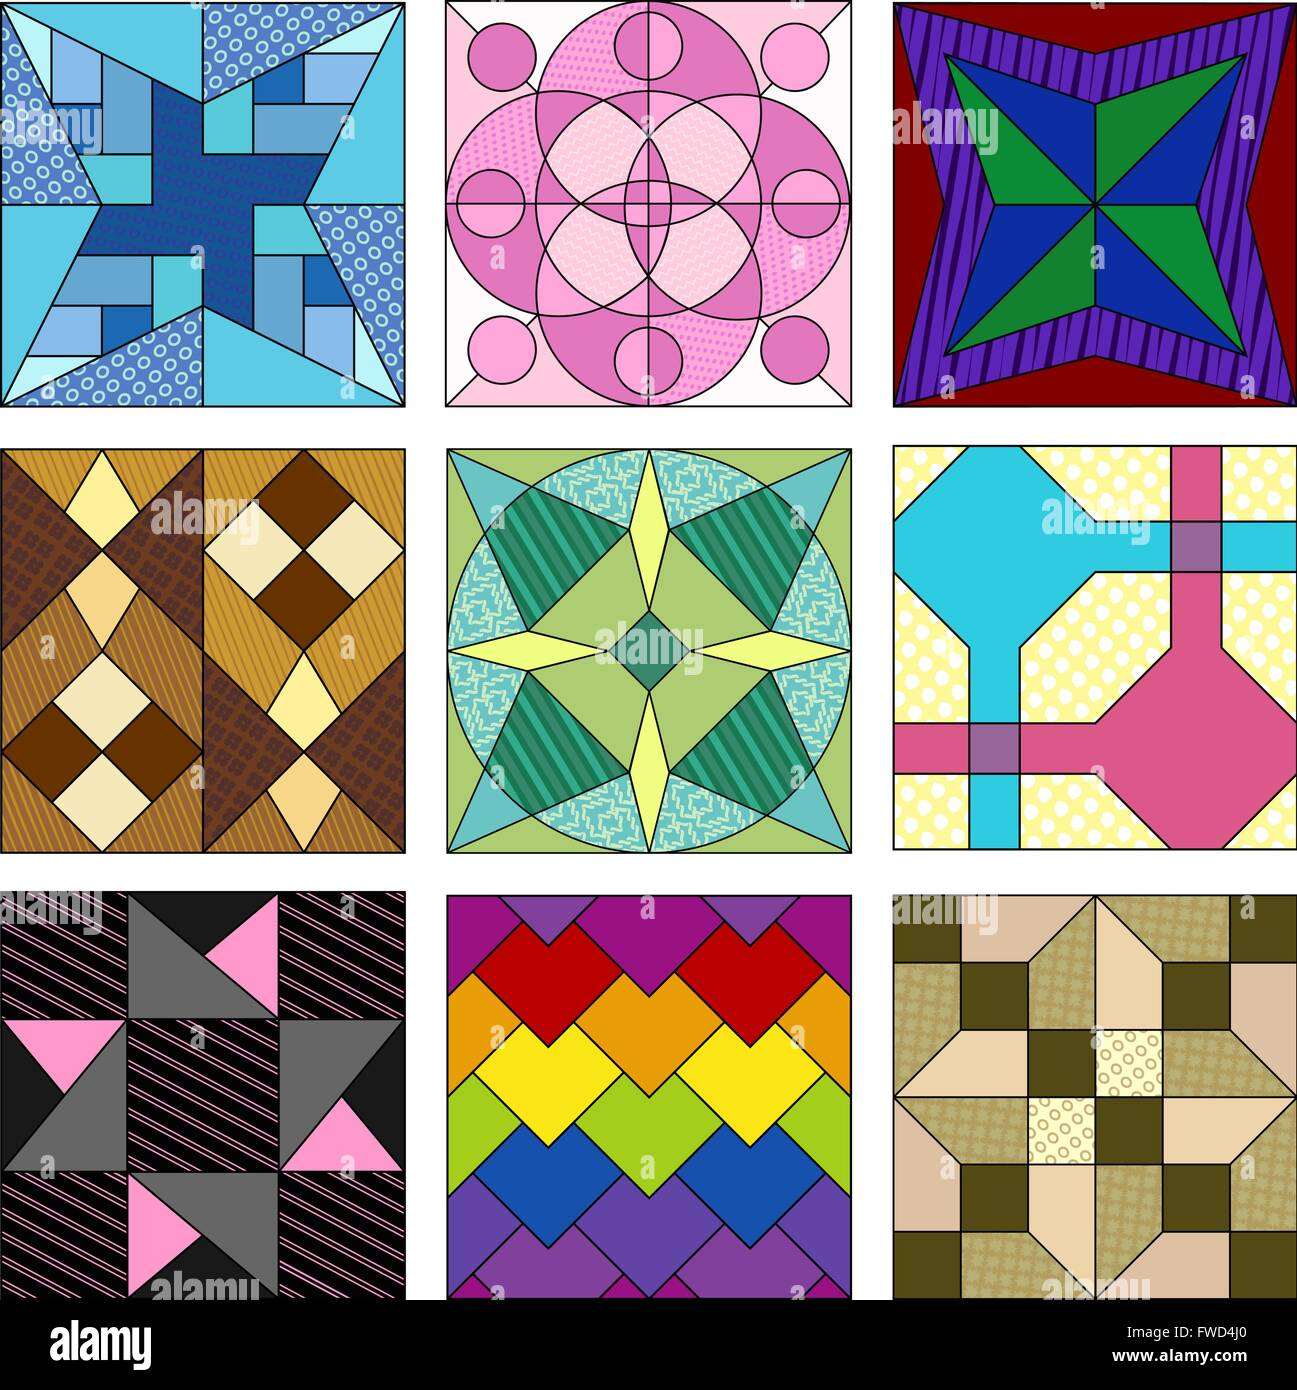 an assortment of quilting patterns some basic some advanced stock